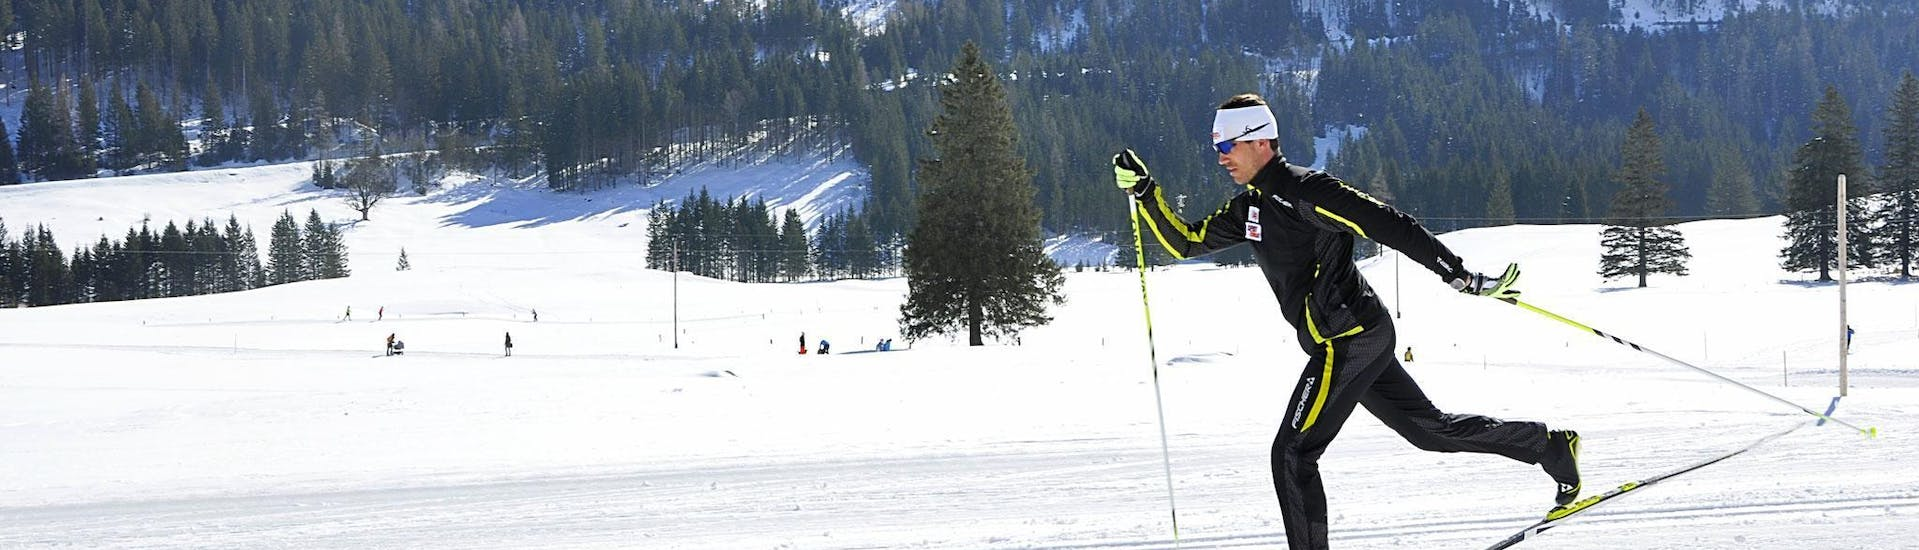 A man rides through the fresh tracks together with the guides from Langlaufschule Gnadenalm during his Trial Cross Country Skiing Lessons for All Levels.